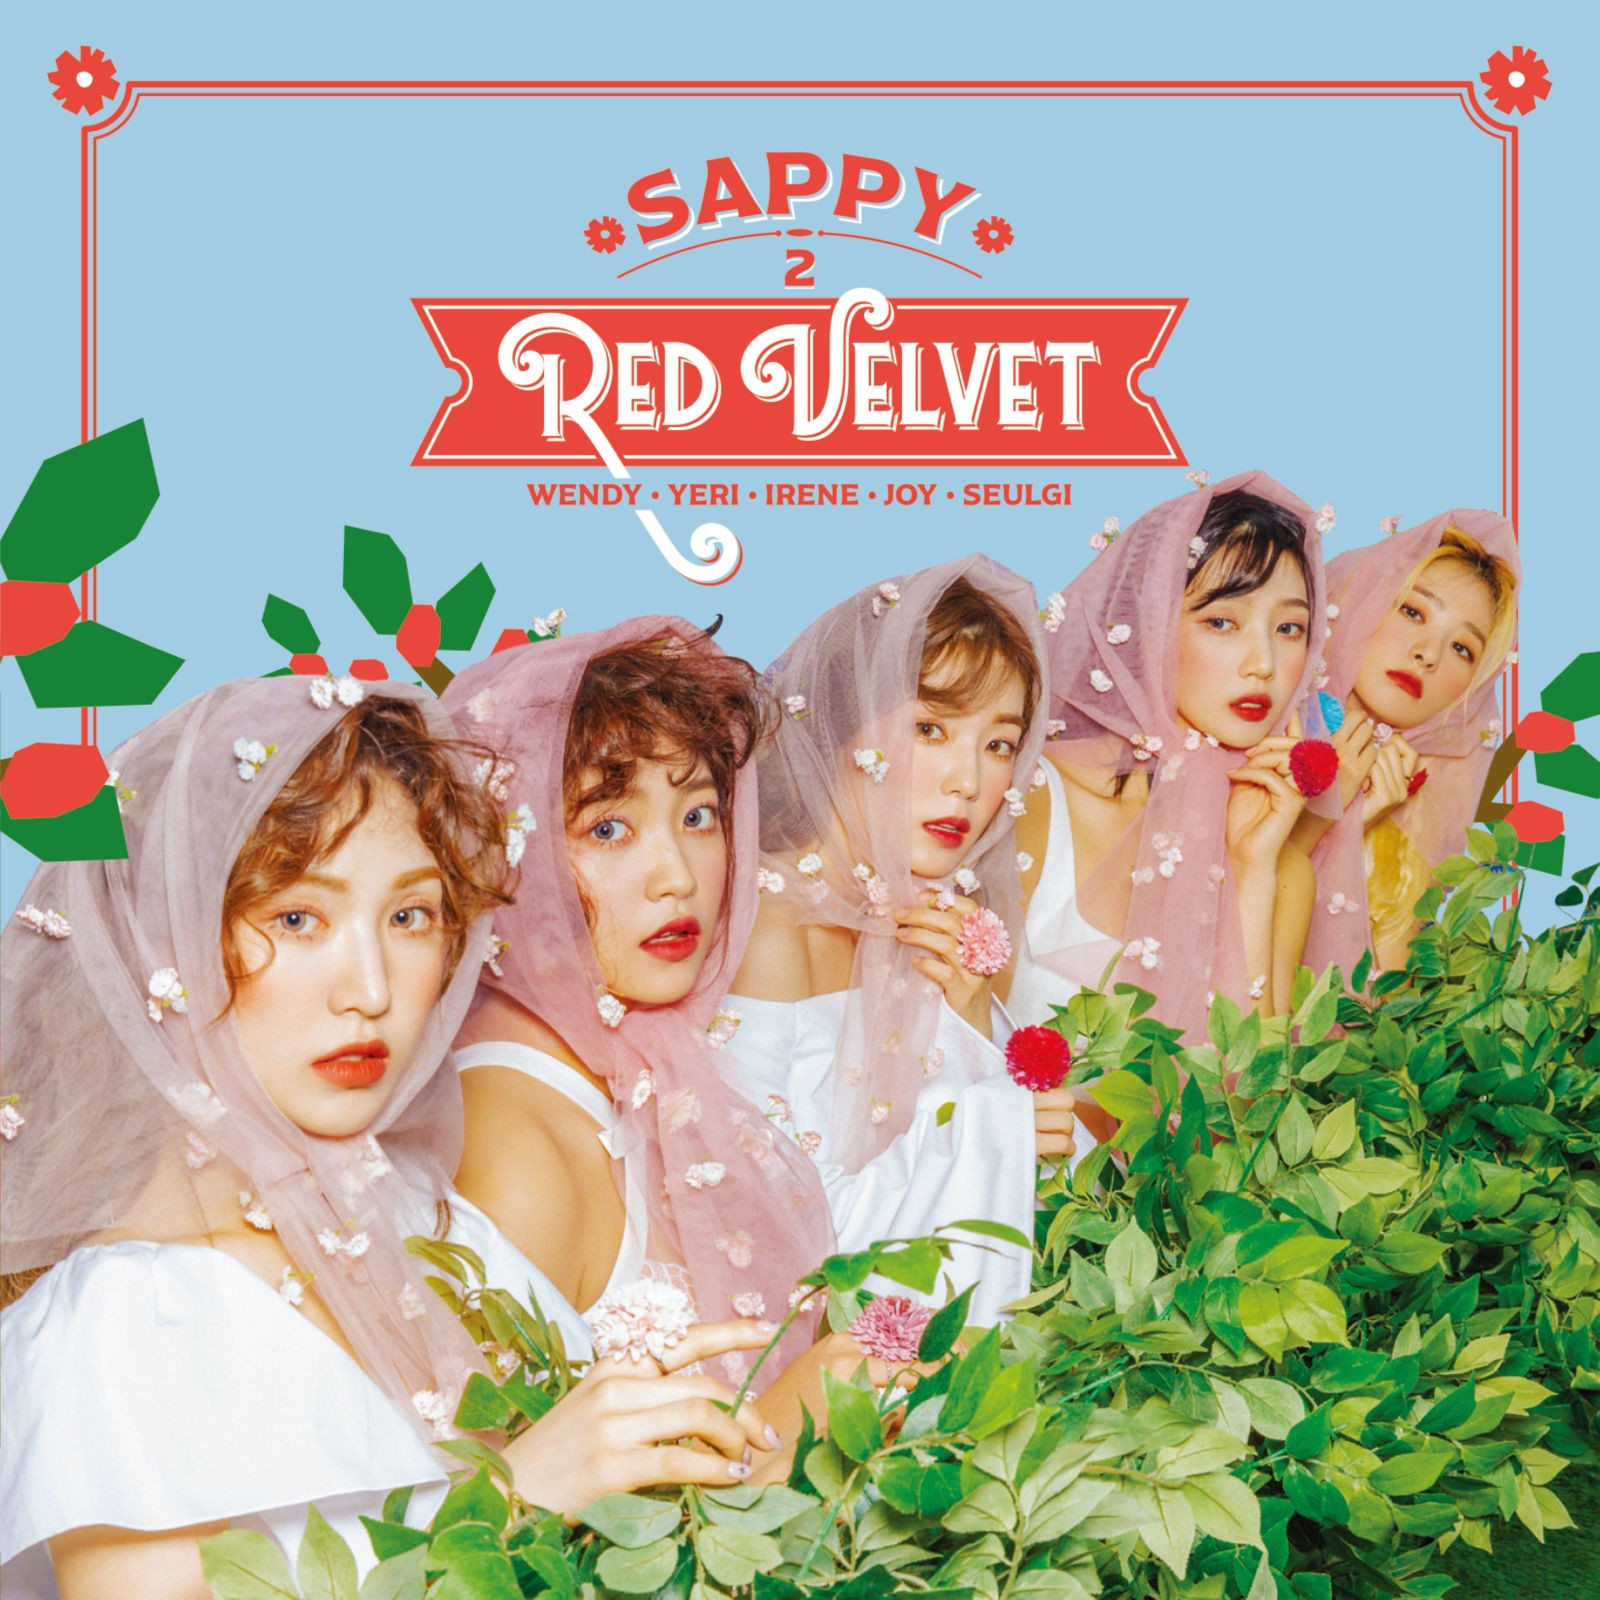 Red Velvet (레드벨벳) – SAPPY [FLAC + MP3 320 + DVD ISO] [2019.05.29]